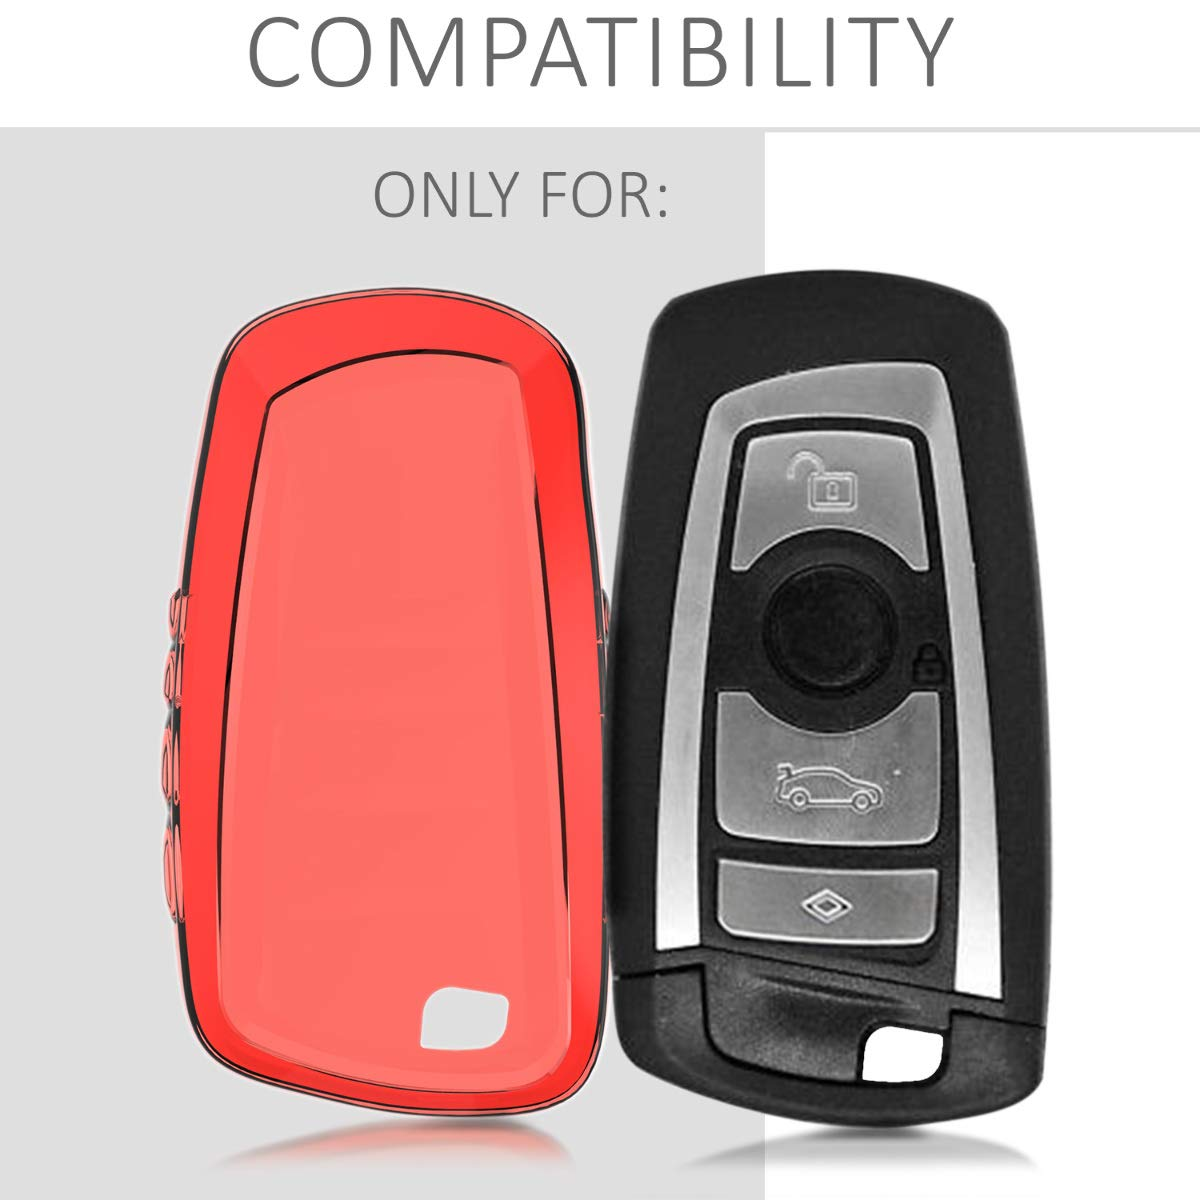 only Keyless Go Soft TPU Silicone Protective Key Fob Cover for BMW 3 Button Remote Control Car Key kwmobile Car Key Cover for BMW - Red High Gloss